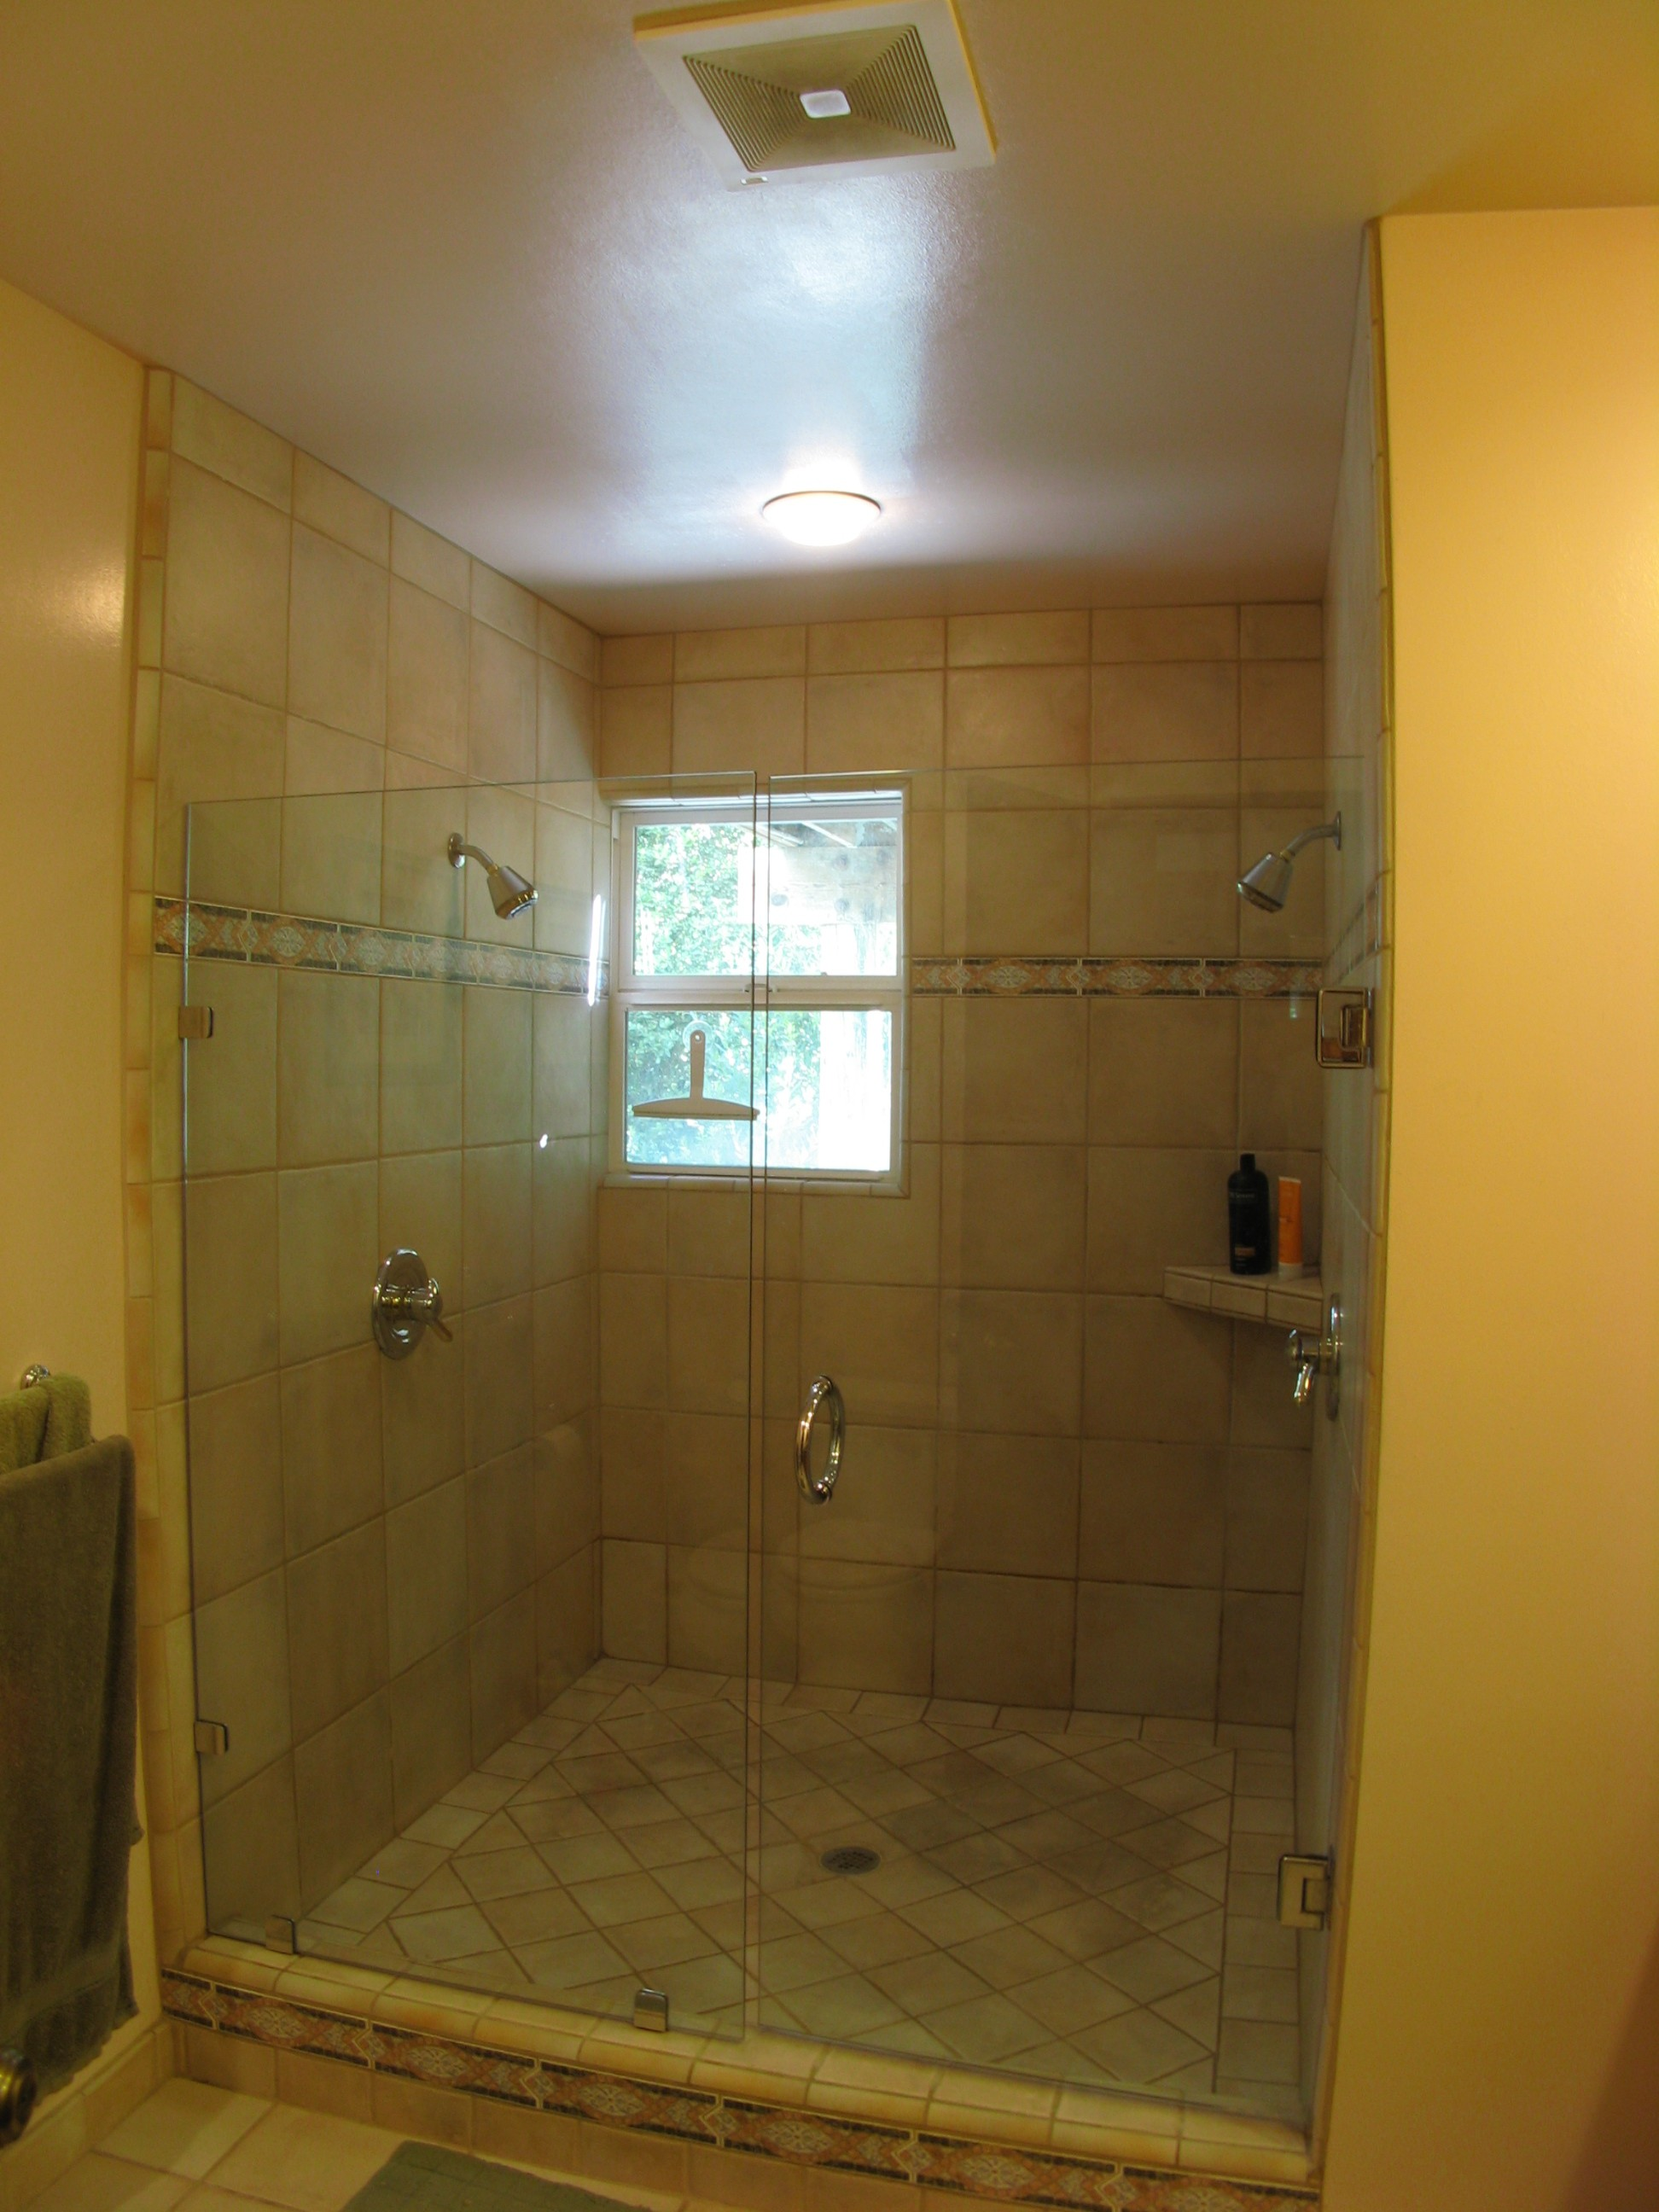 Remodel Bathroom Shower How Much Is A Bathroom Remodel How Much Does It Cost To Remodel A